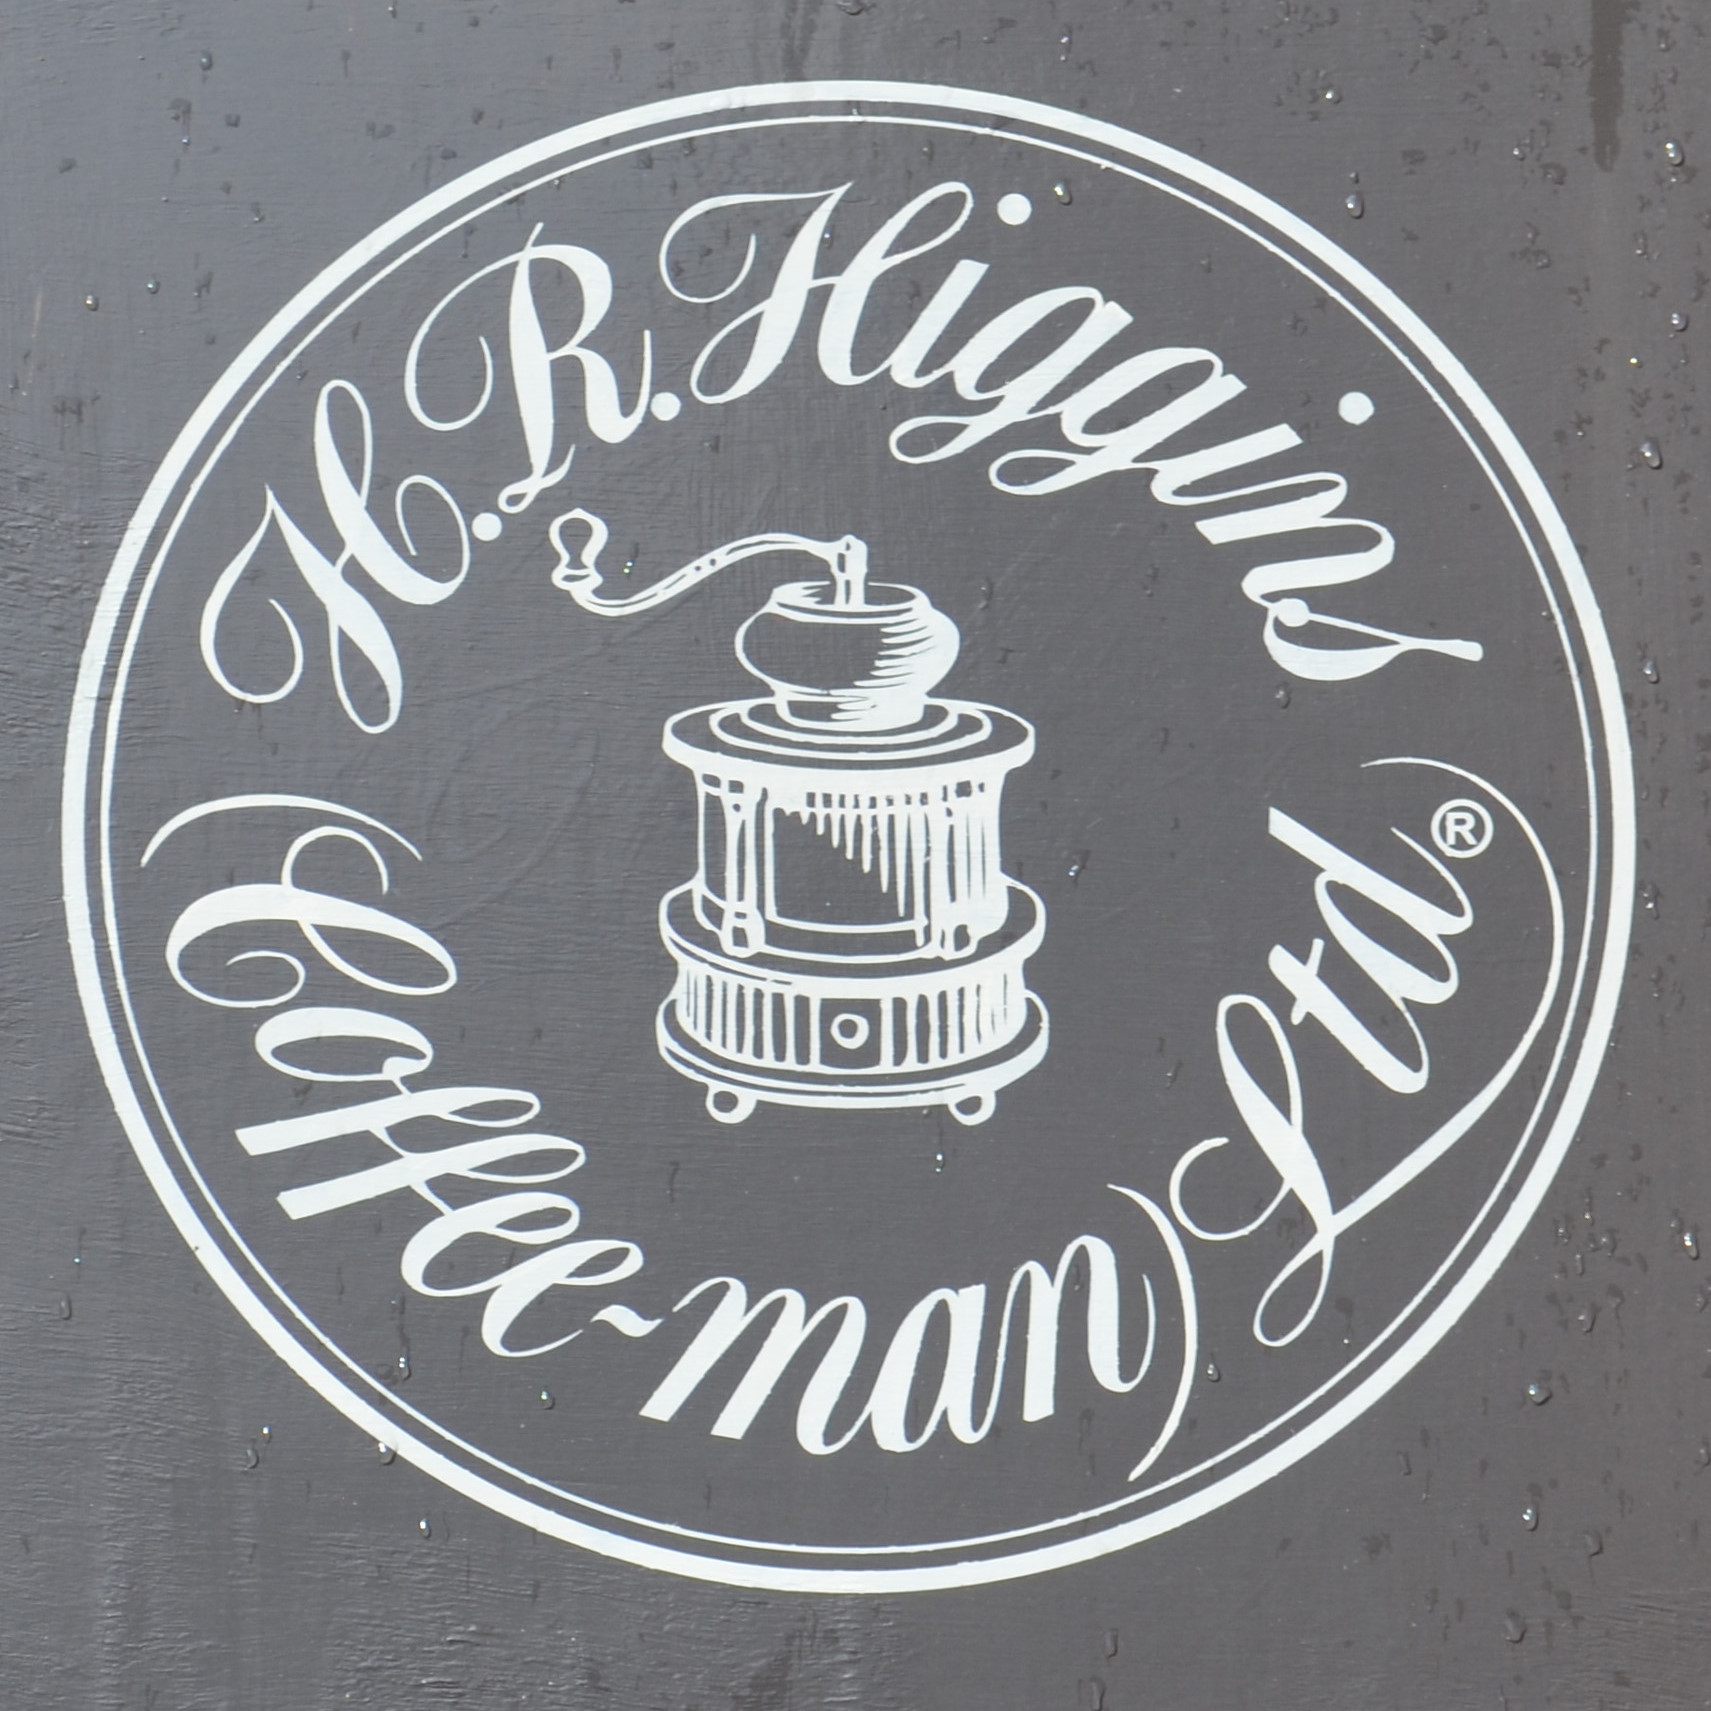 The HR Higgns Coffee-man Ltd logo, from the shop of Duke Street, Mayfair.